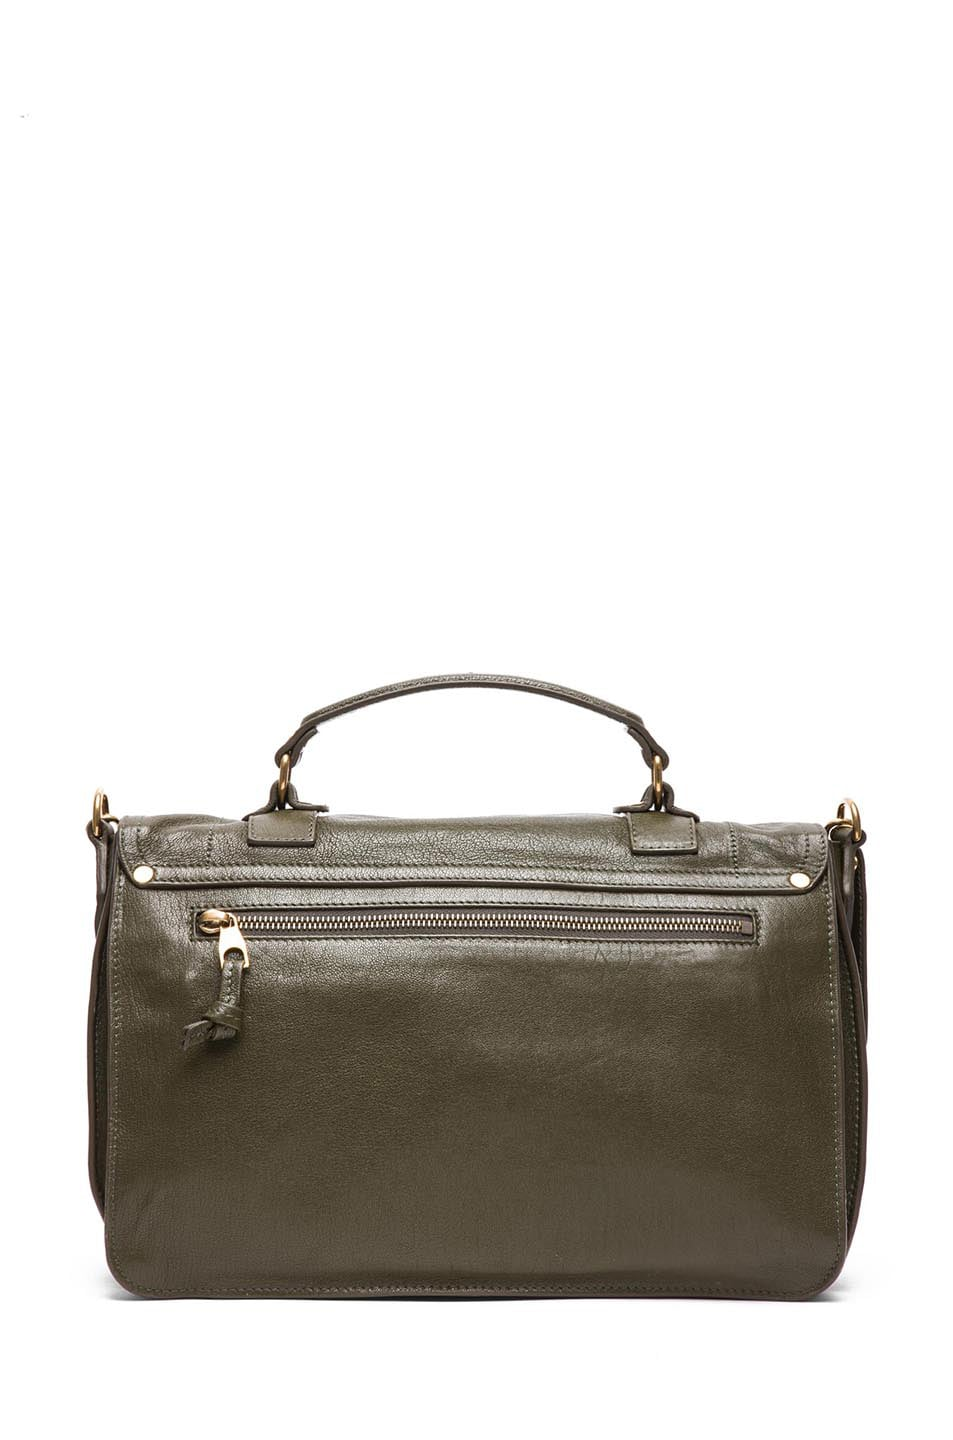 Image 2 of Proenza Schouler Medium PS1 Leather Satchel in Military